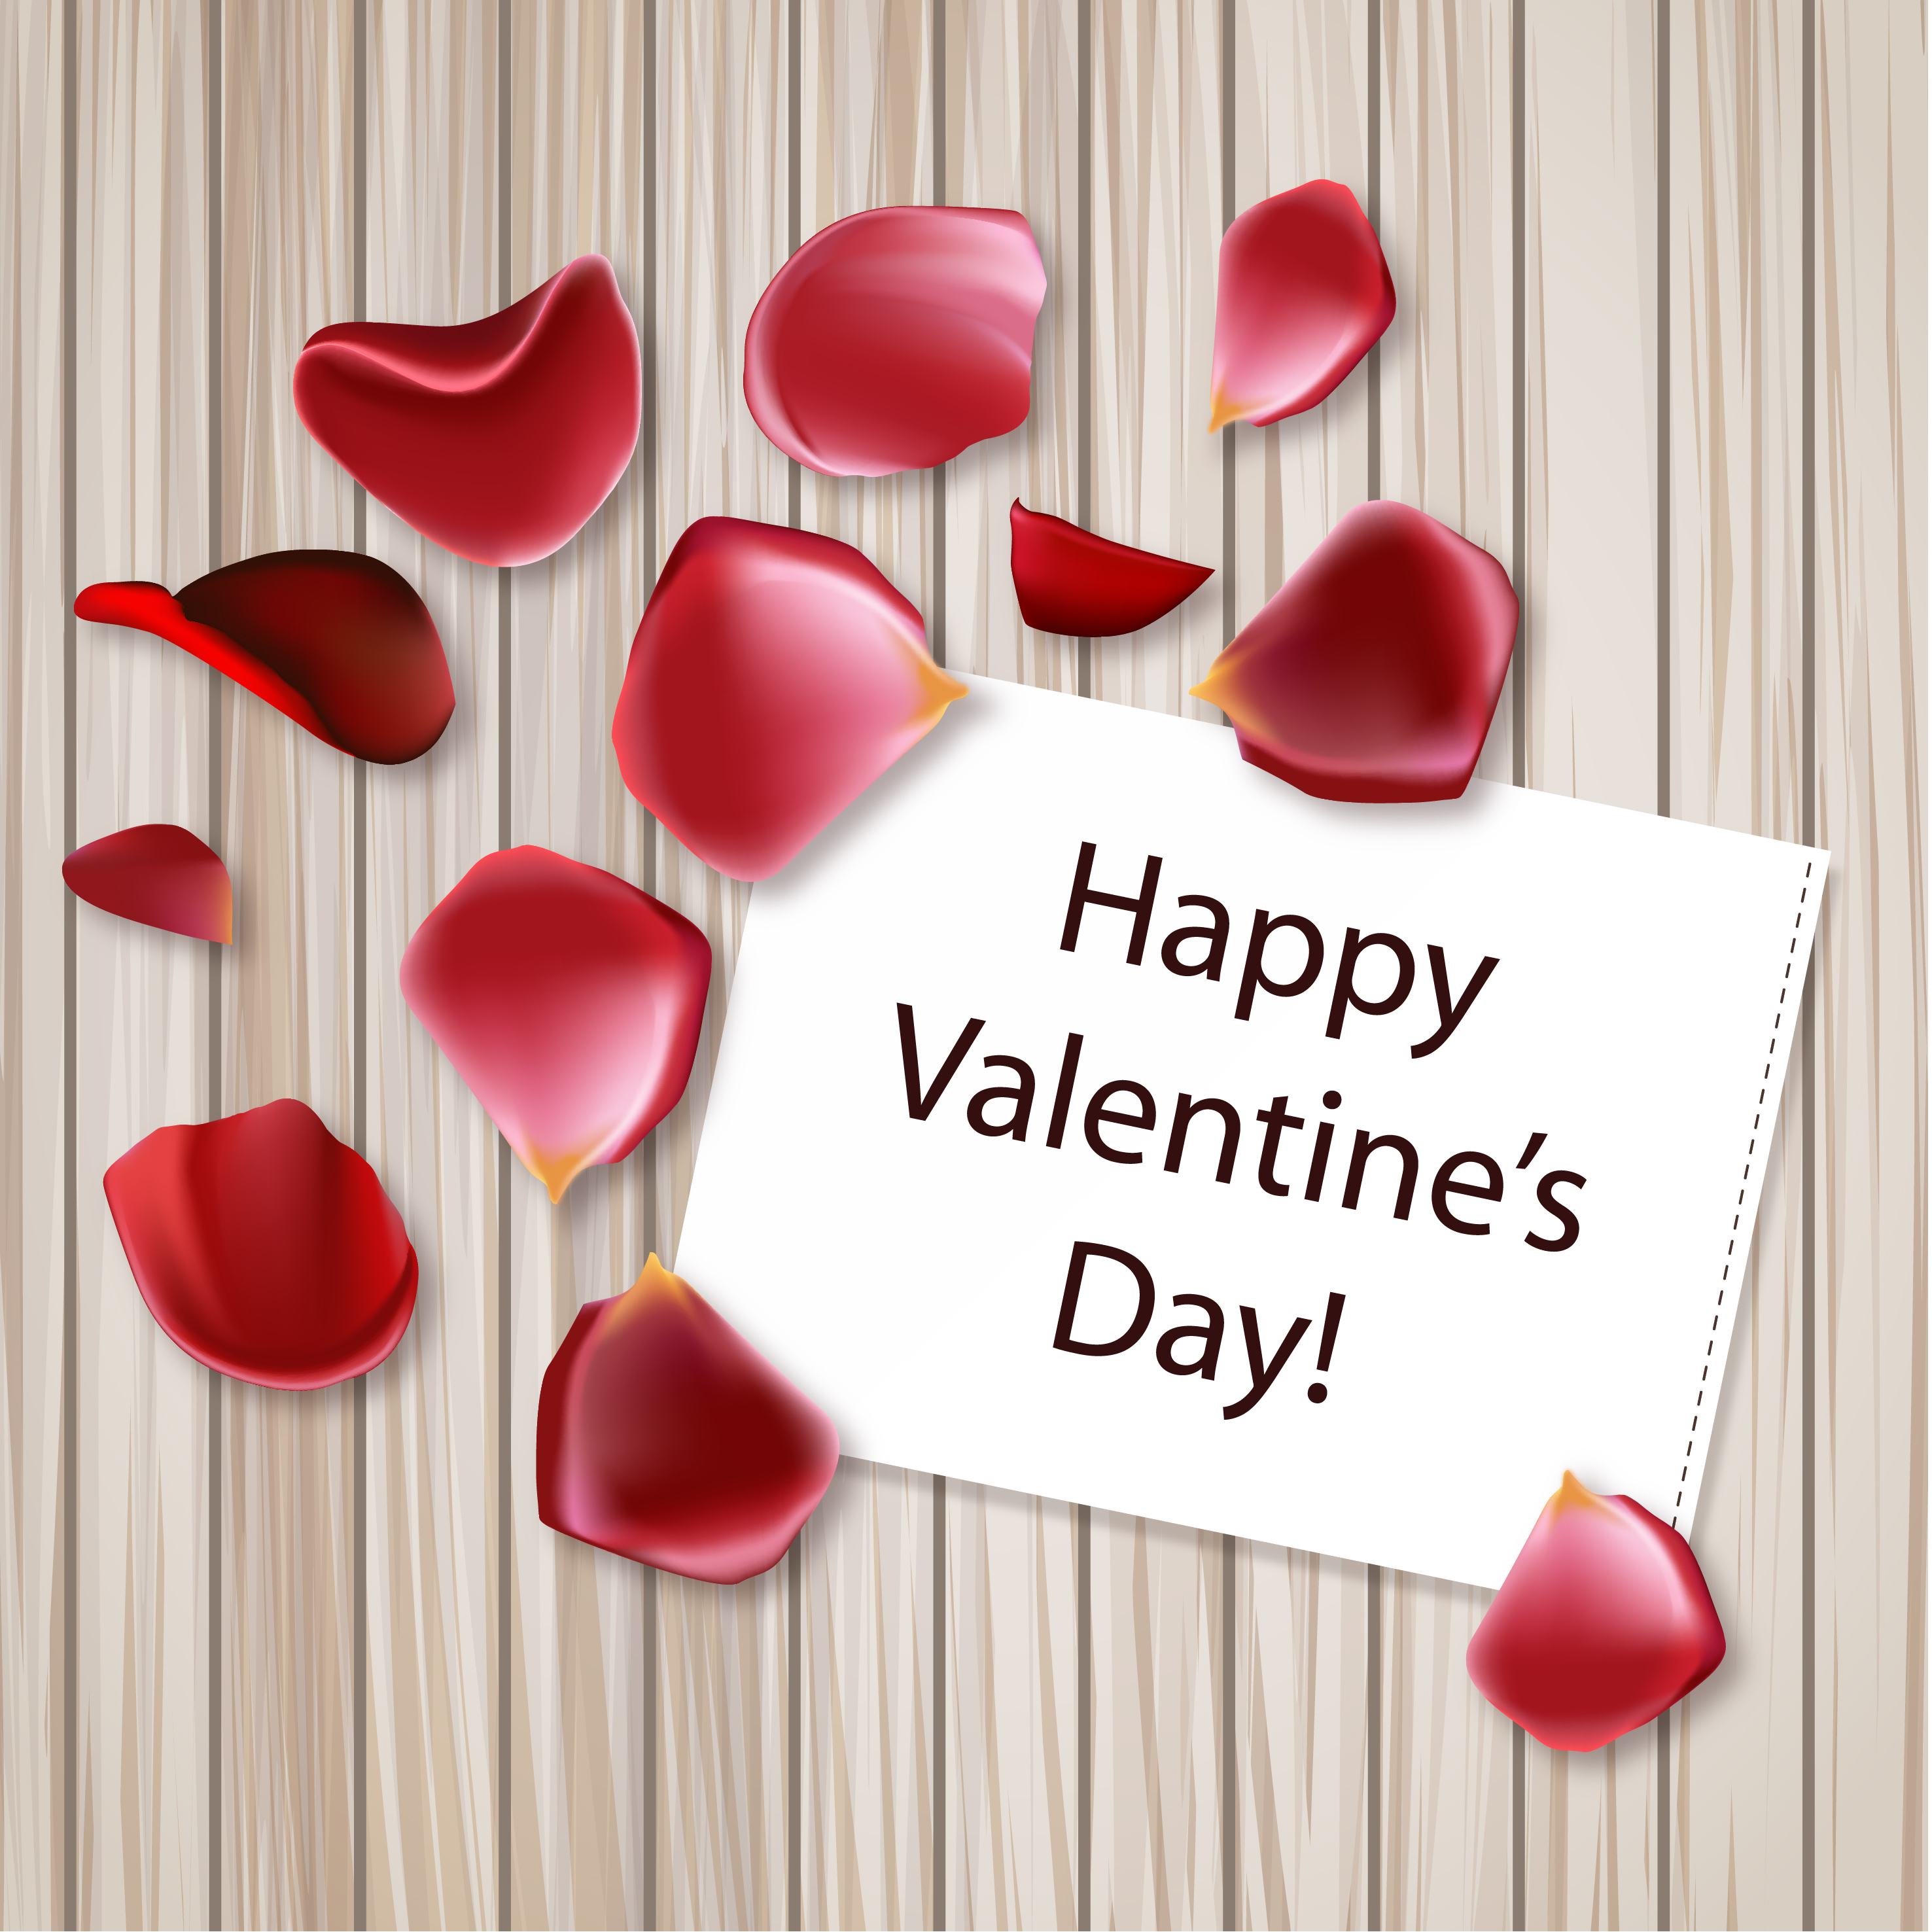 orst valentines day cards - HD2953×2953